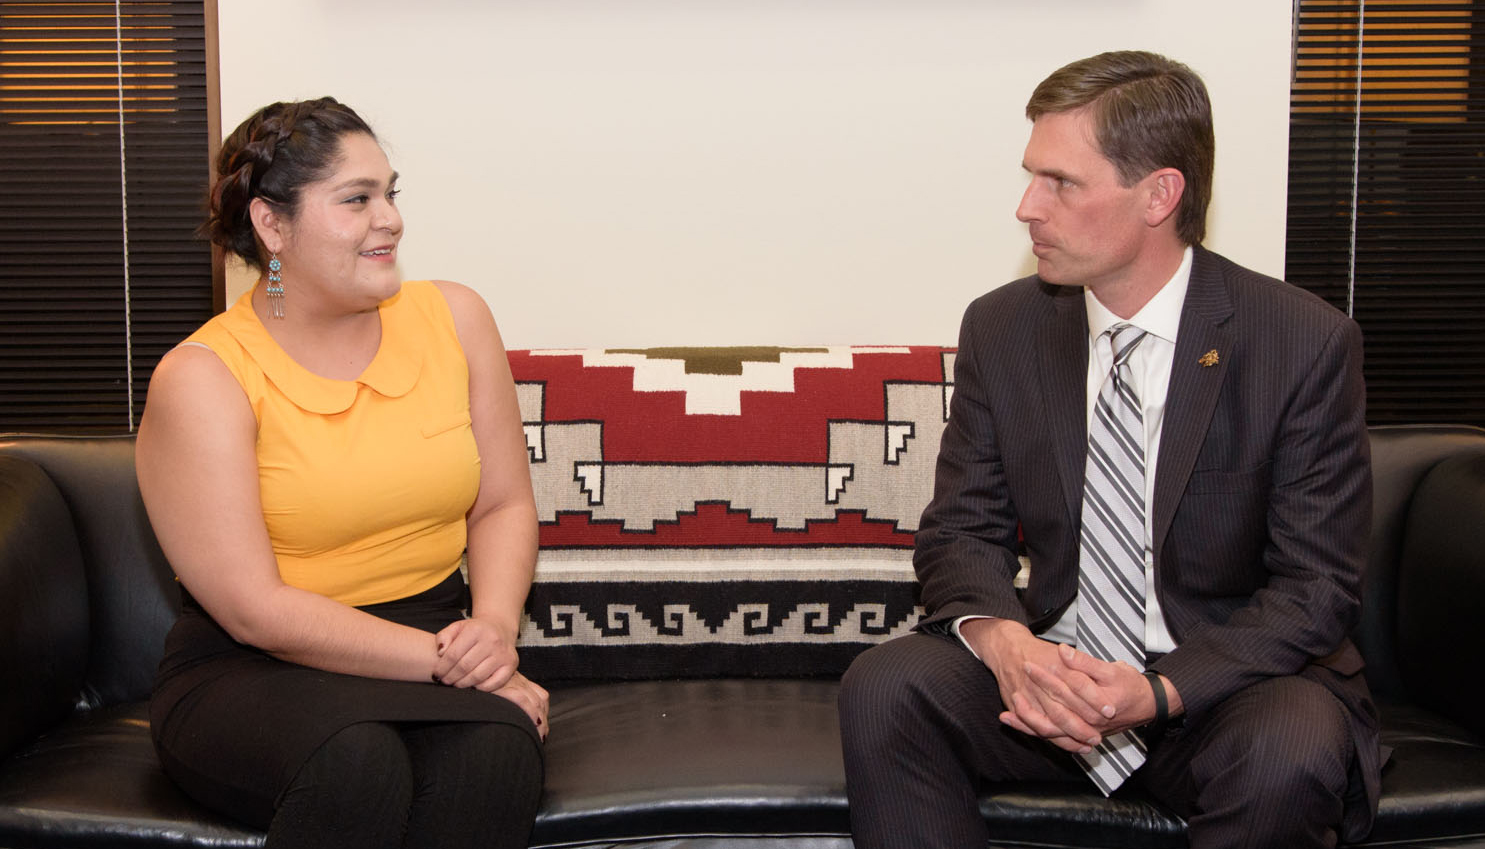 Student from Navajo Nation to attend State of the Union address